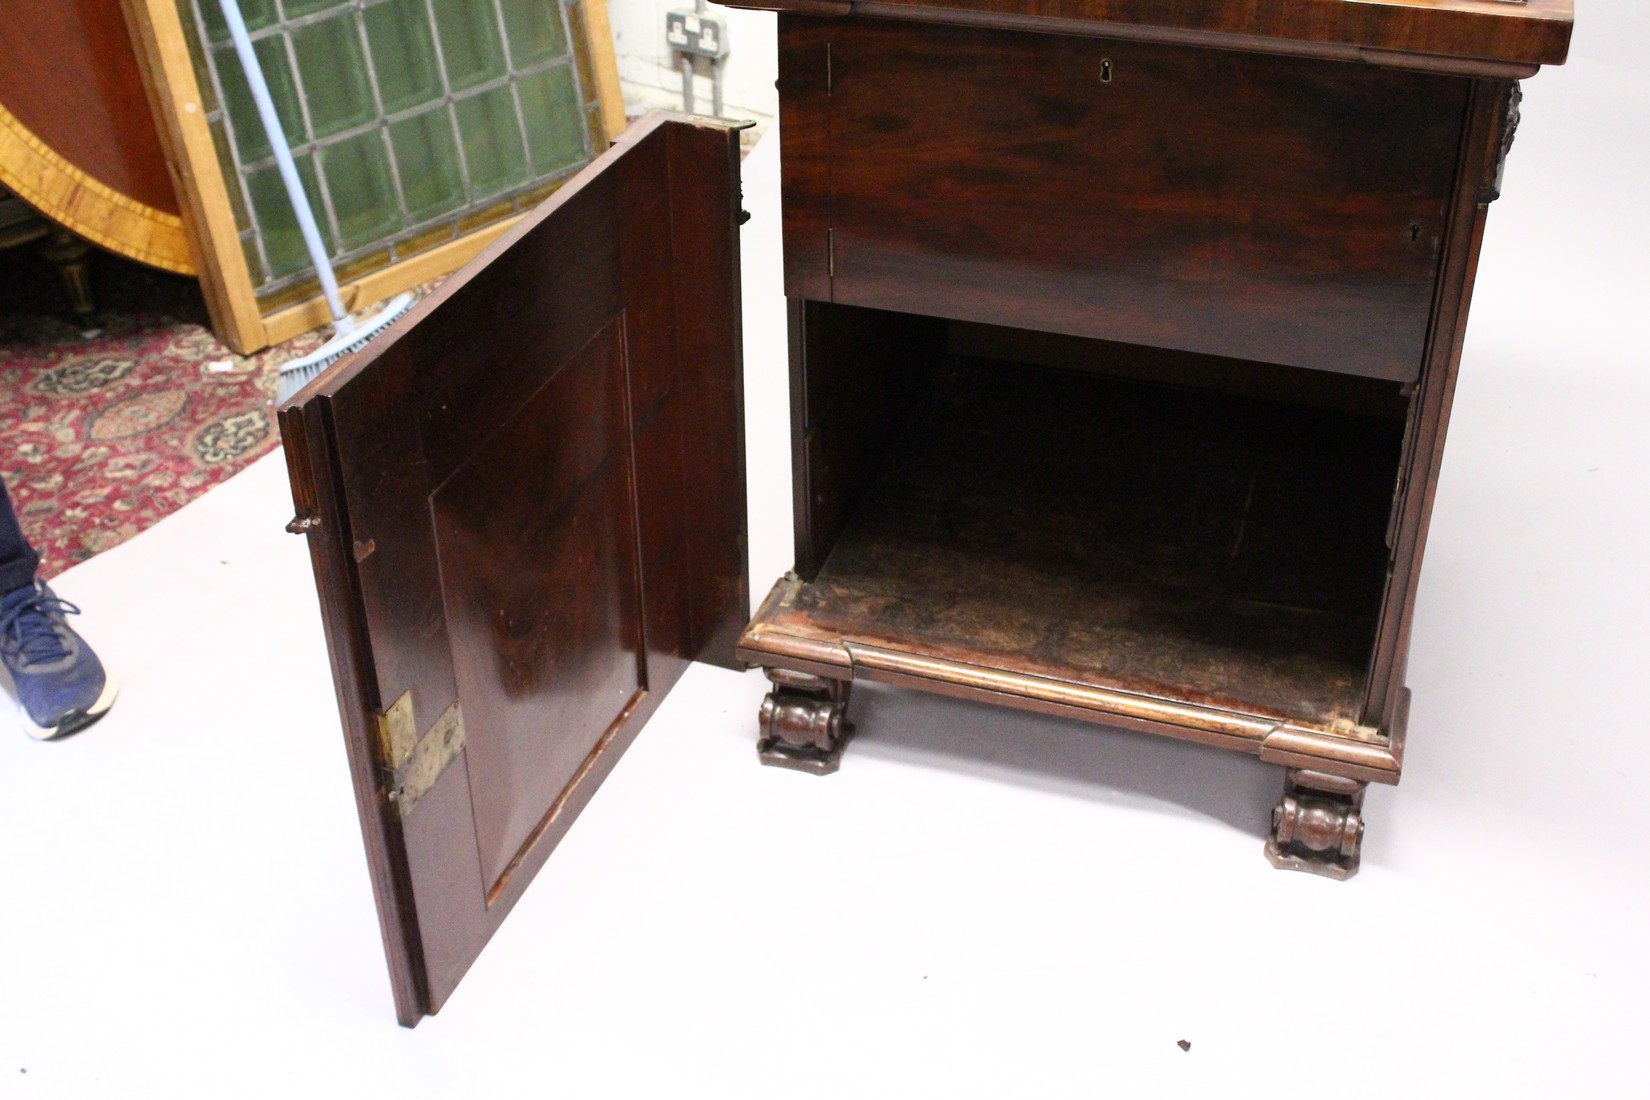 A GOOD 19TH CENTURY MAHOGANY PEDESTAL CUPBOARD, with a concave moulded top, panelled frieze with - Image 6 of 8